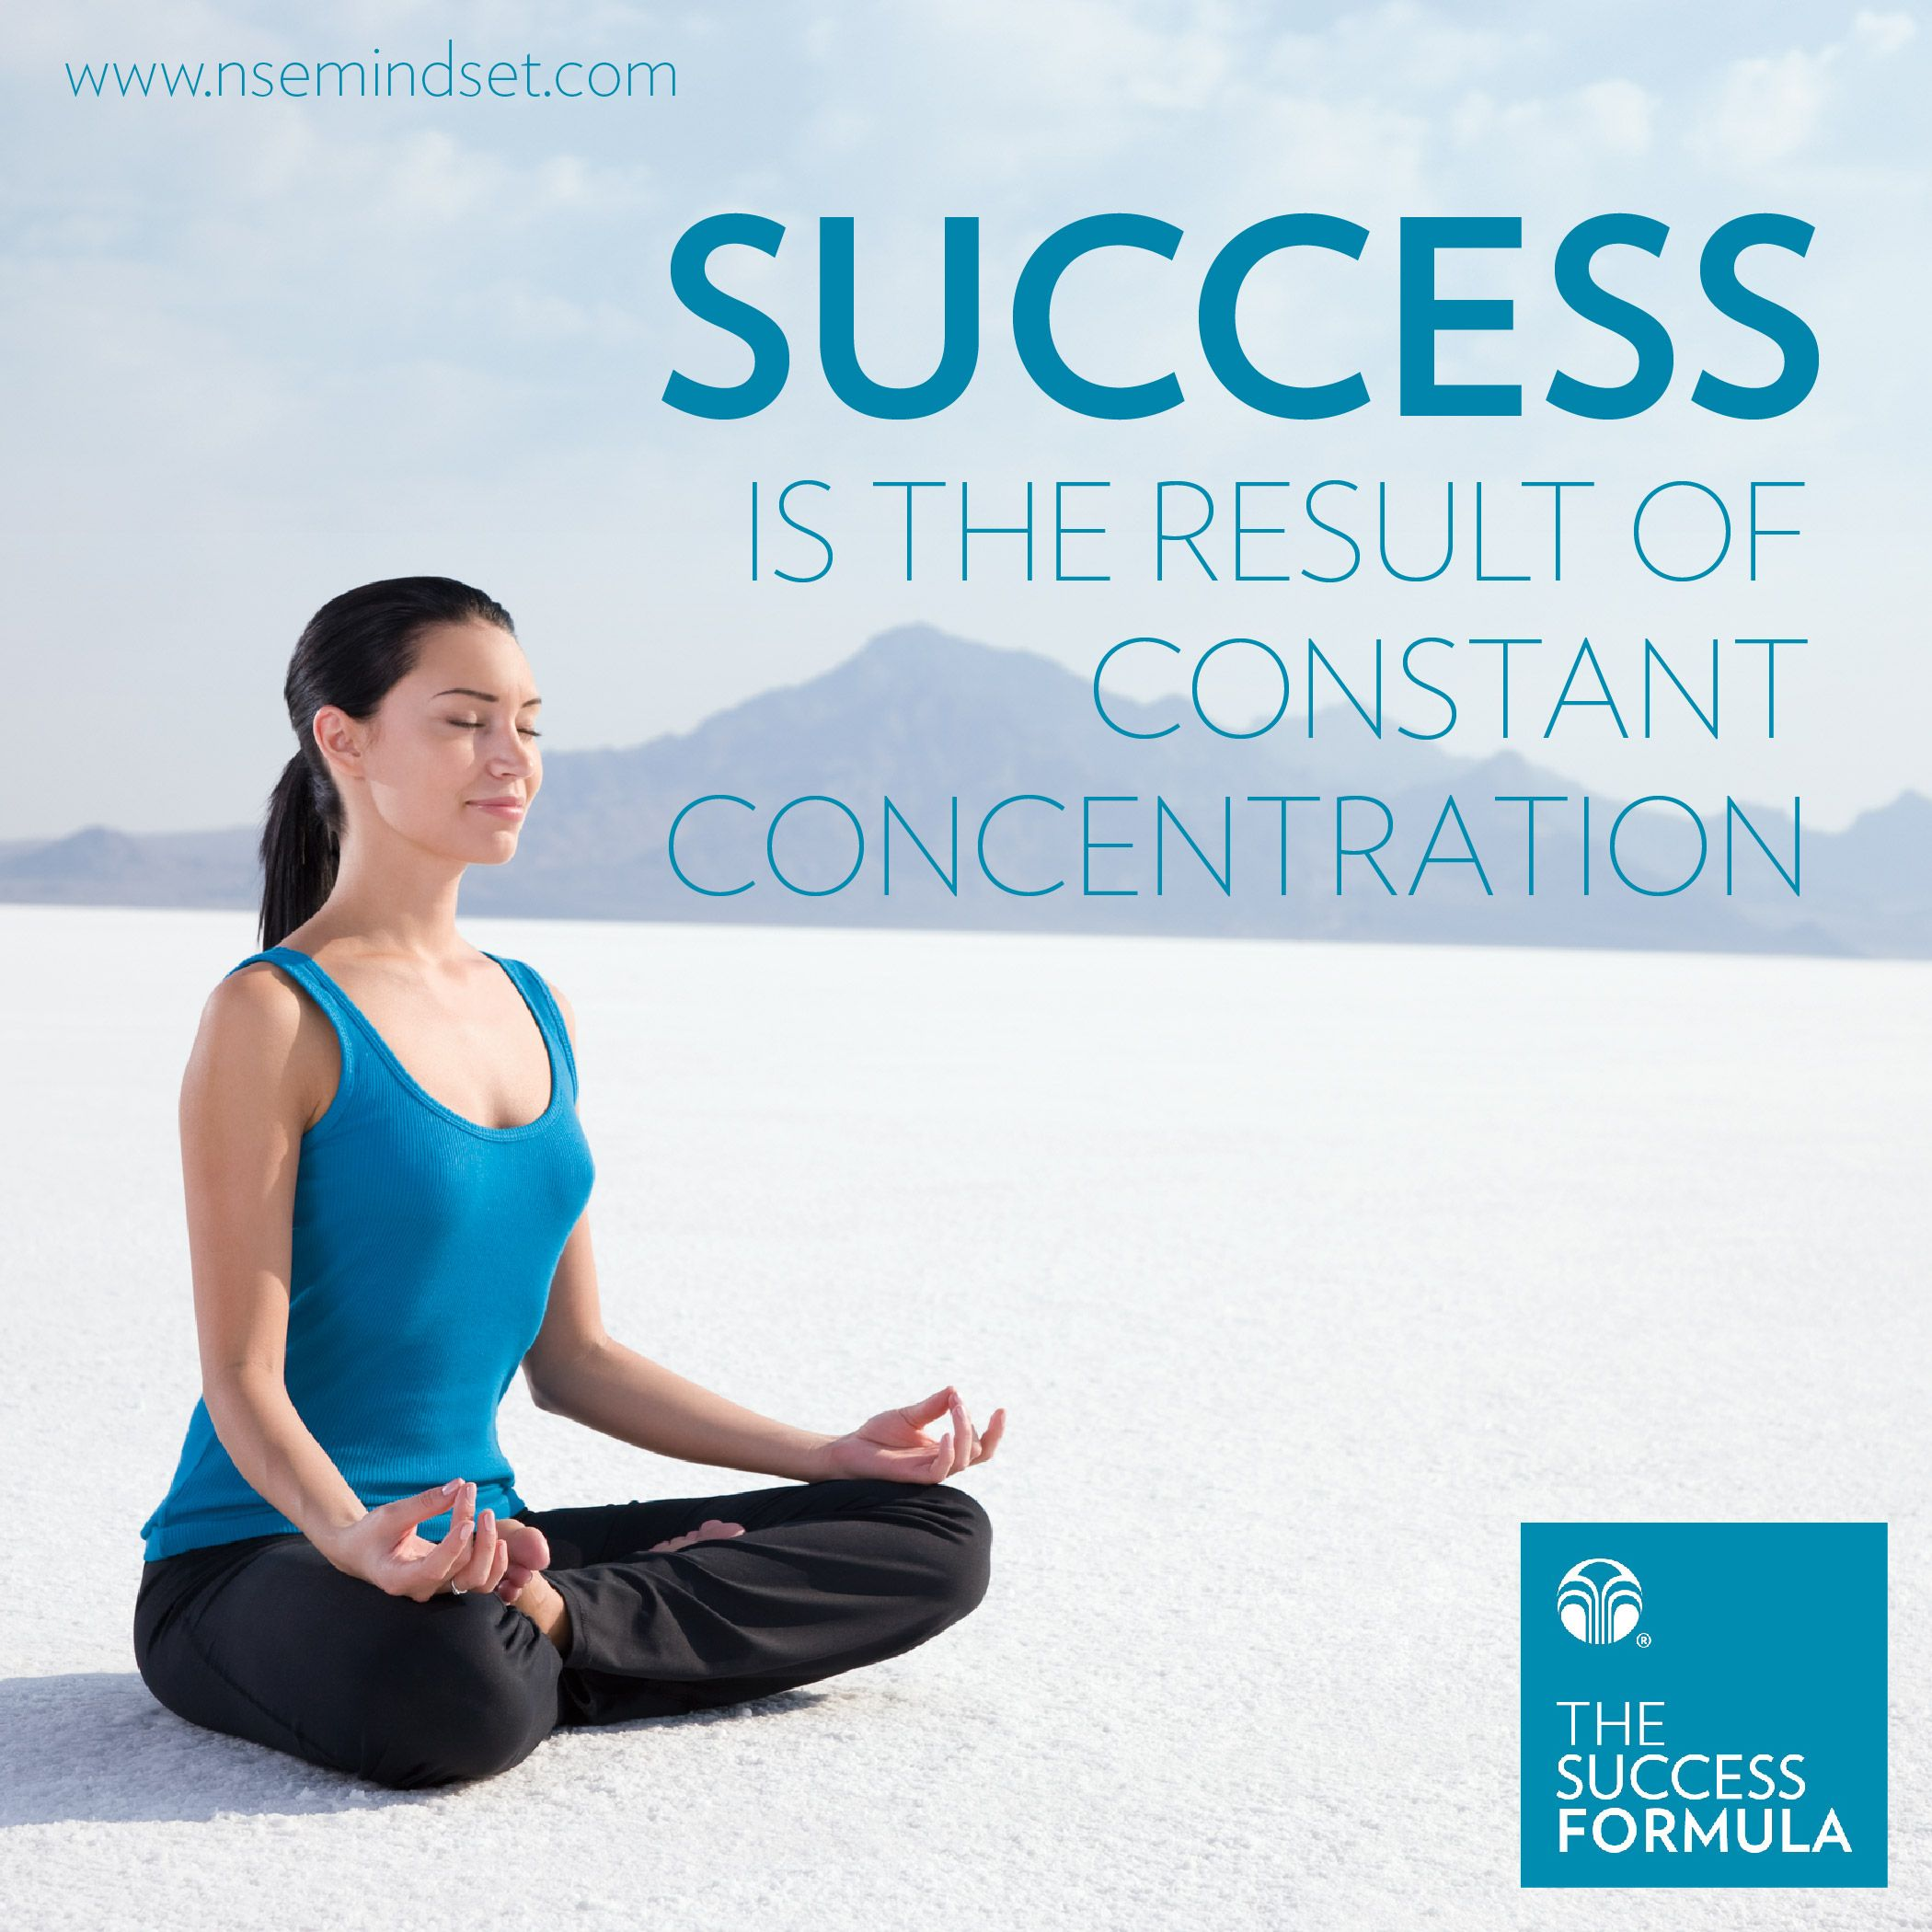 Success is the result of constant concentration. #SuccessFormula #NuSkin